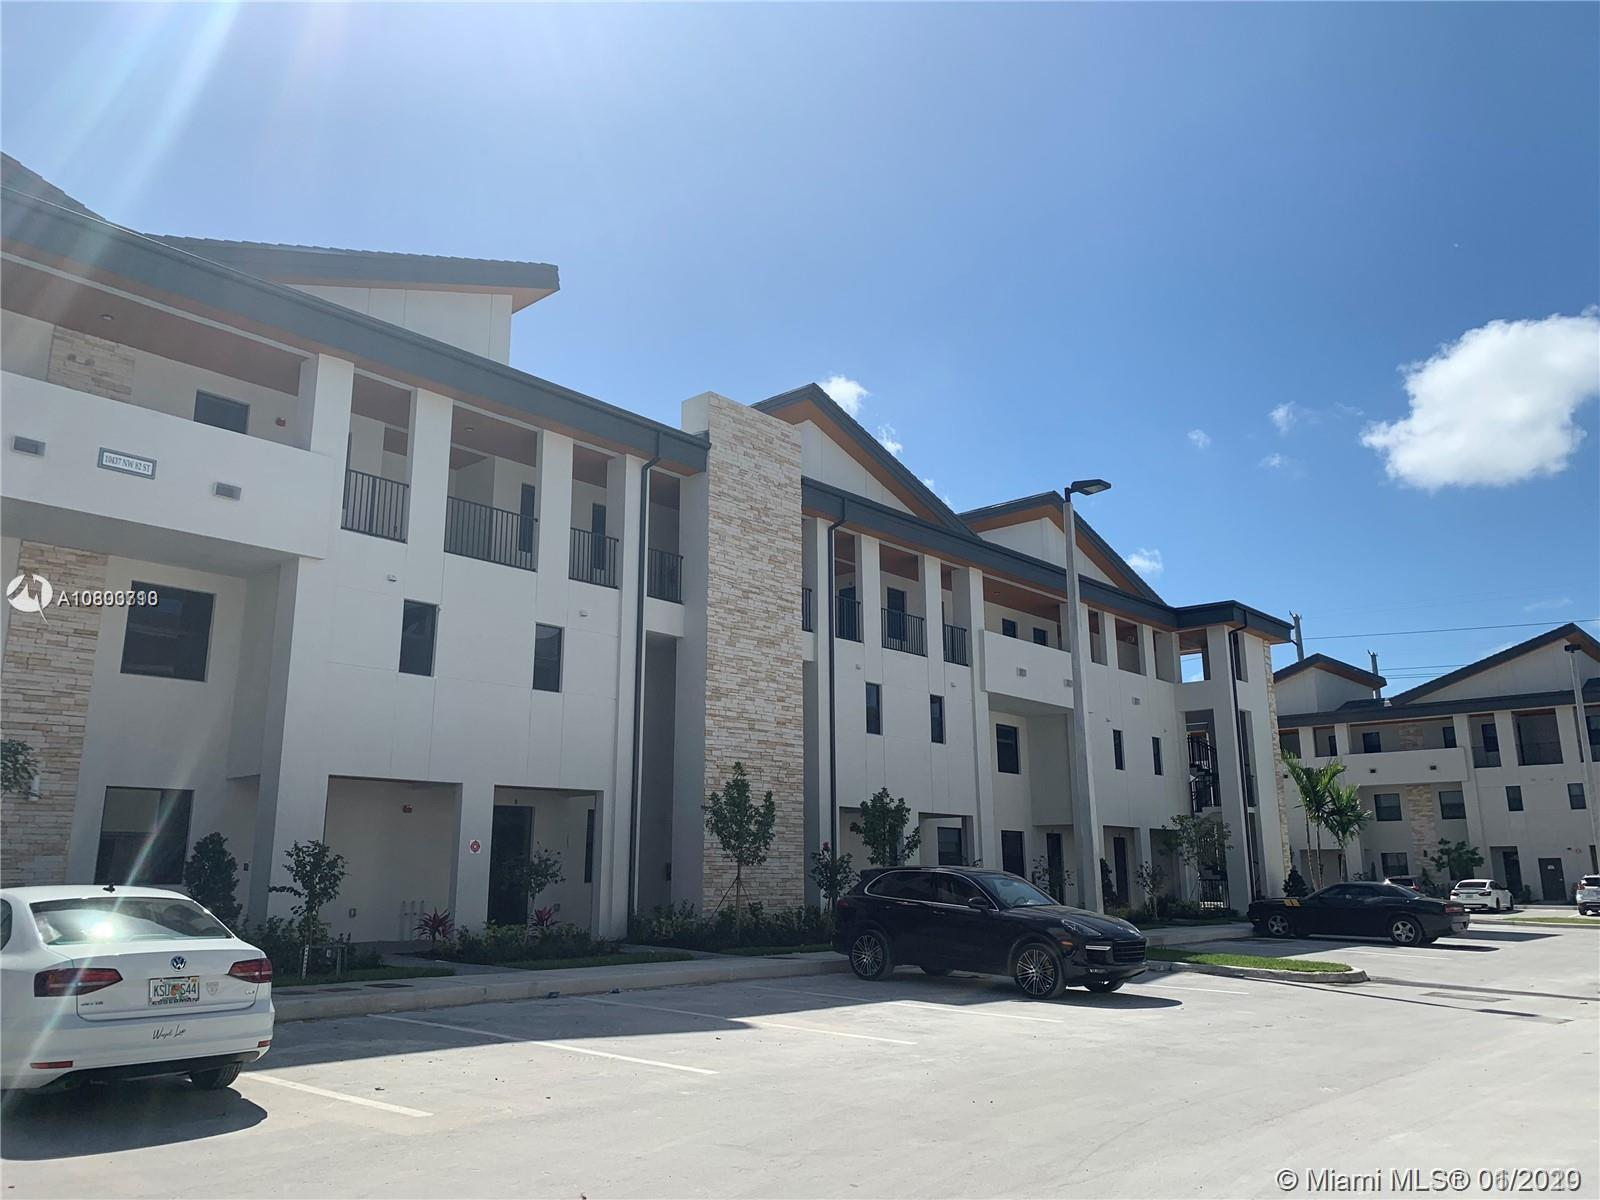 10437 NW 82nd St, 2 - Doral, Florida